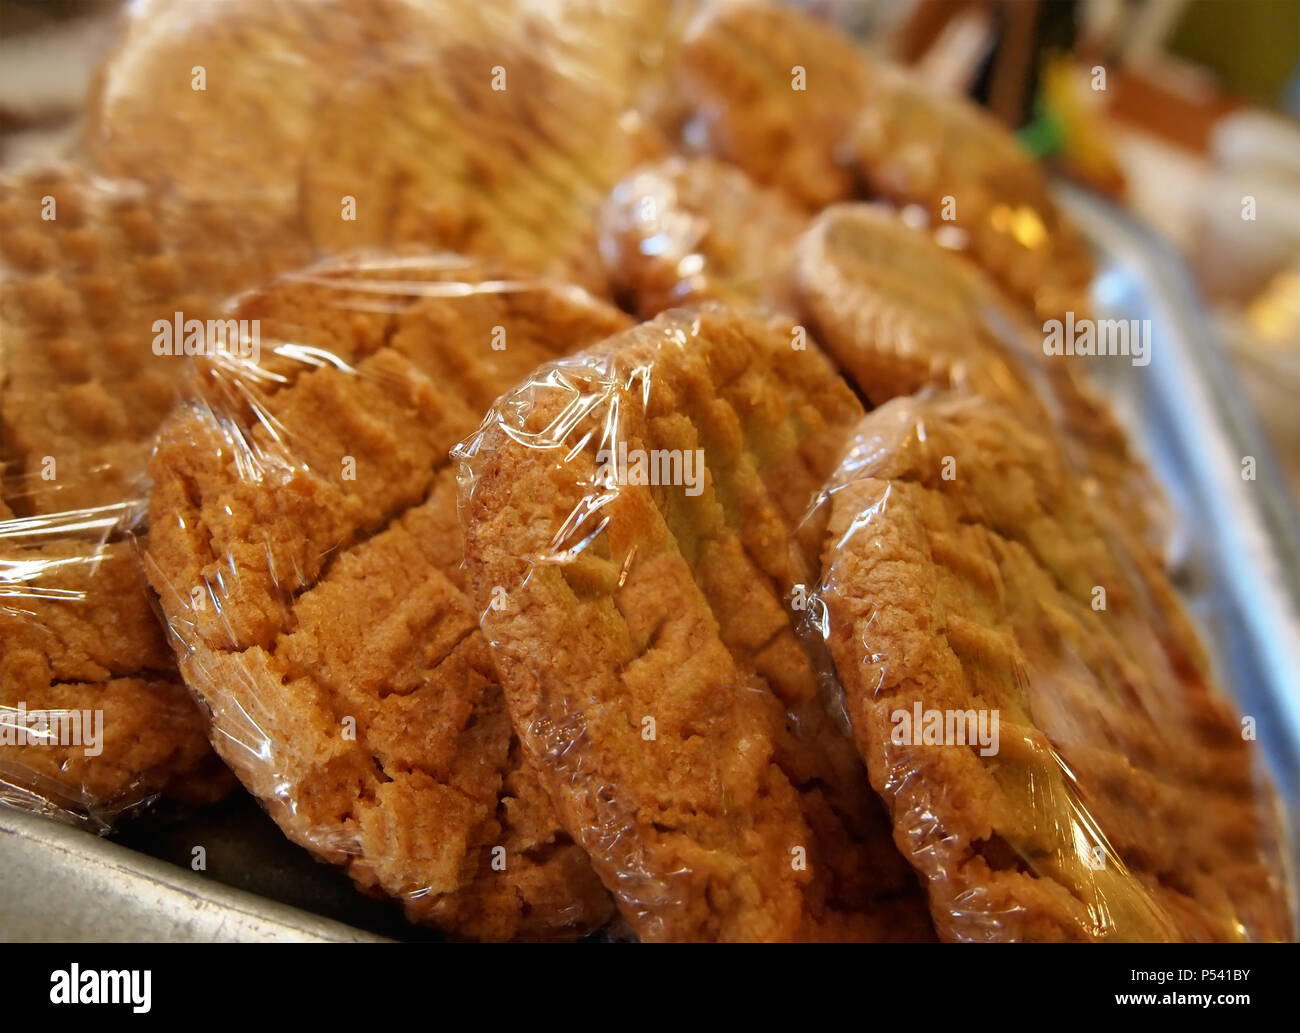 Freshly baked peanut butter cookies in plastic wrap at a coffeehouse bakery counter. - Stock Image